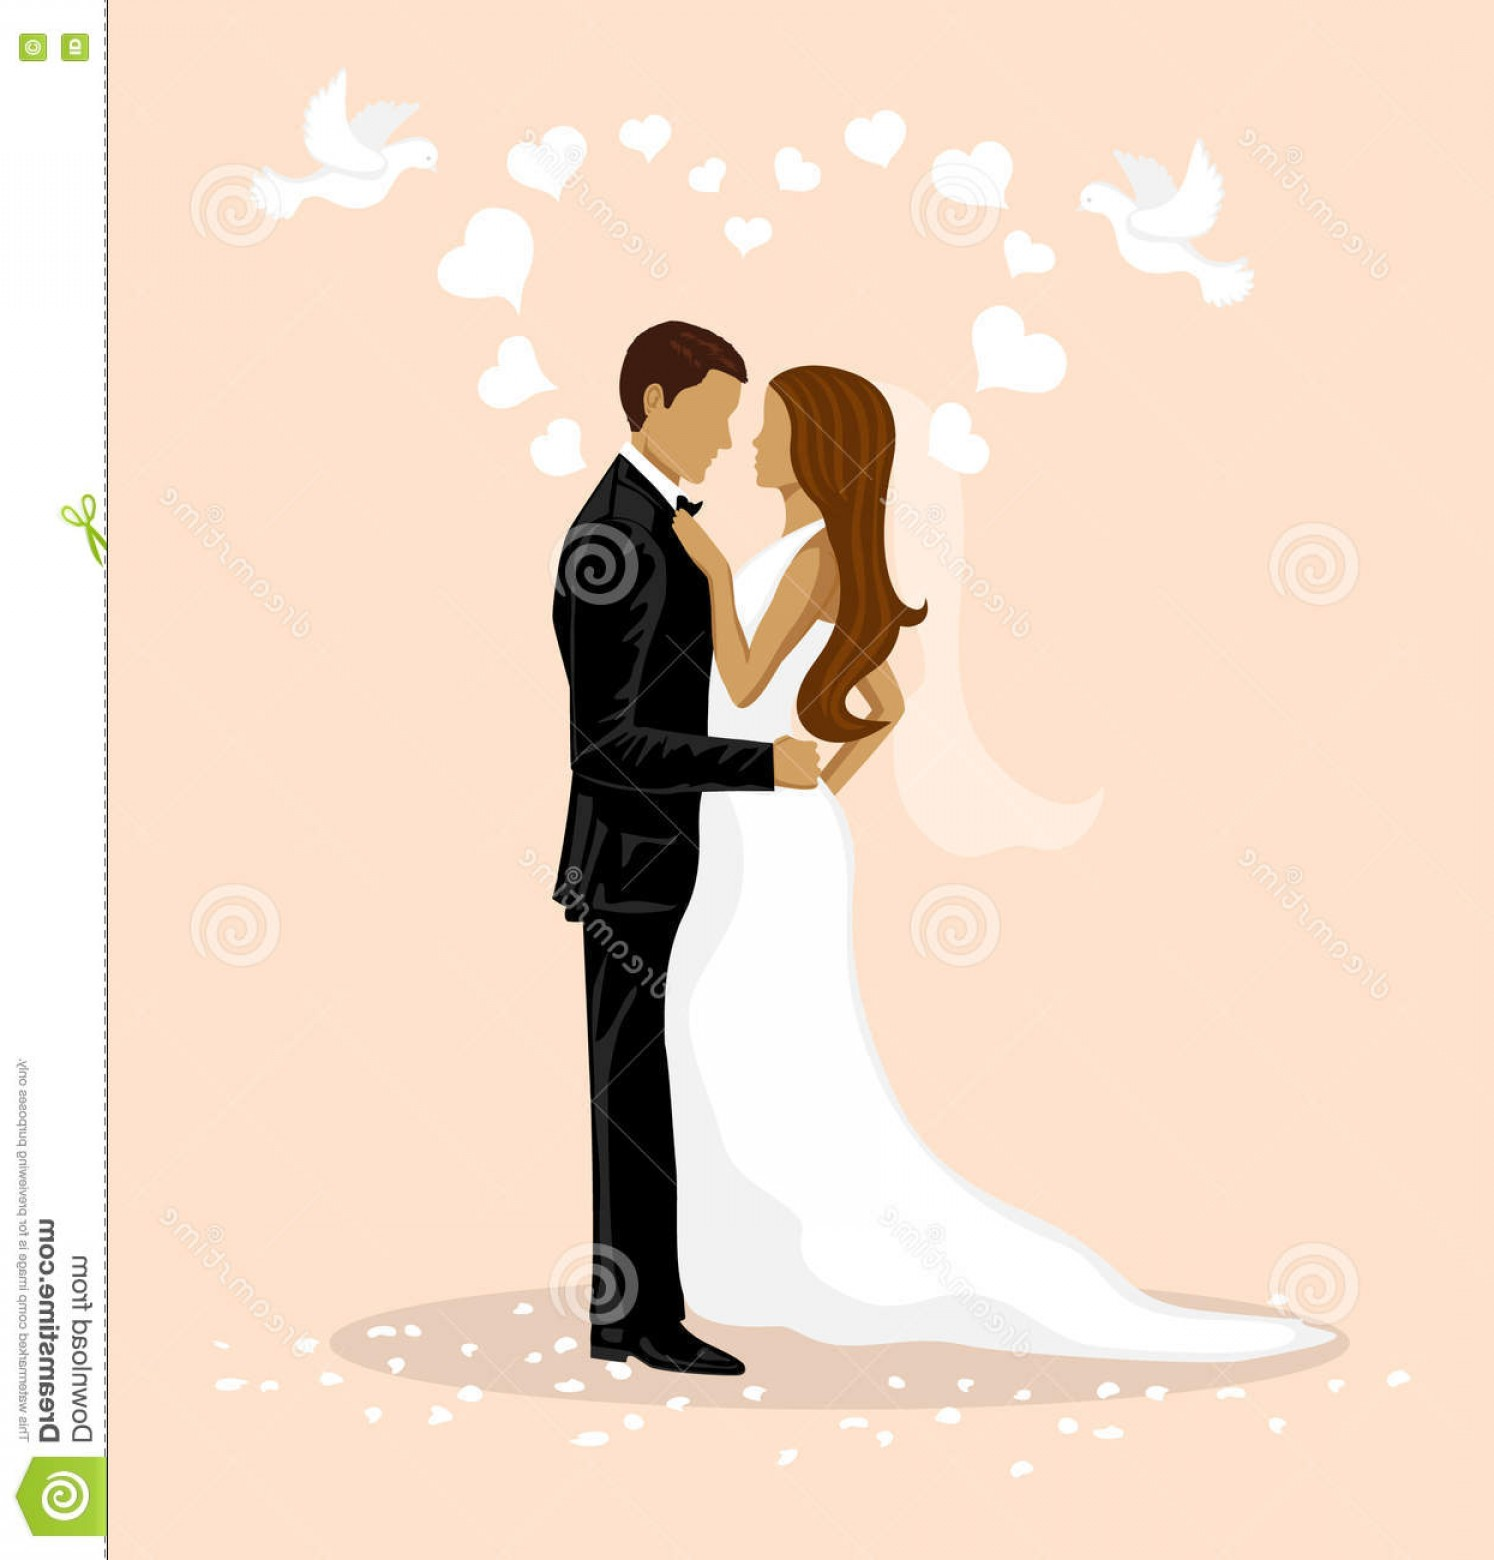 Married In Vegas Vector Art: Stock Illustration Bride Groom Illustration Just Married Funny Concept Wedding Games Image